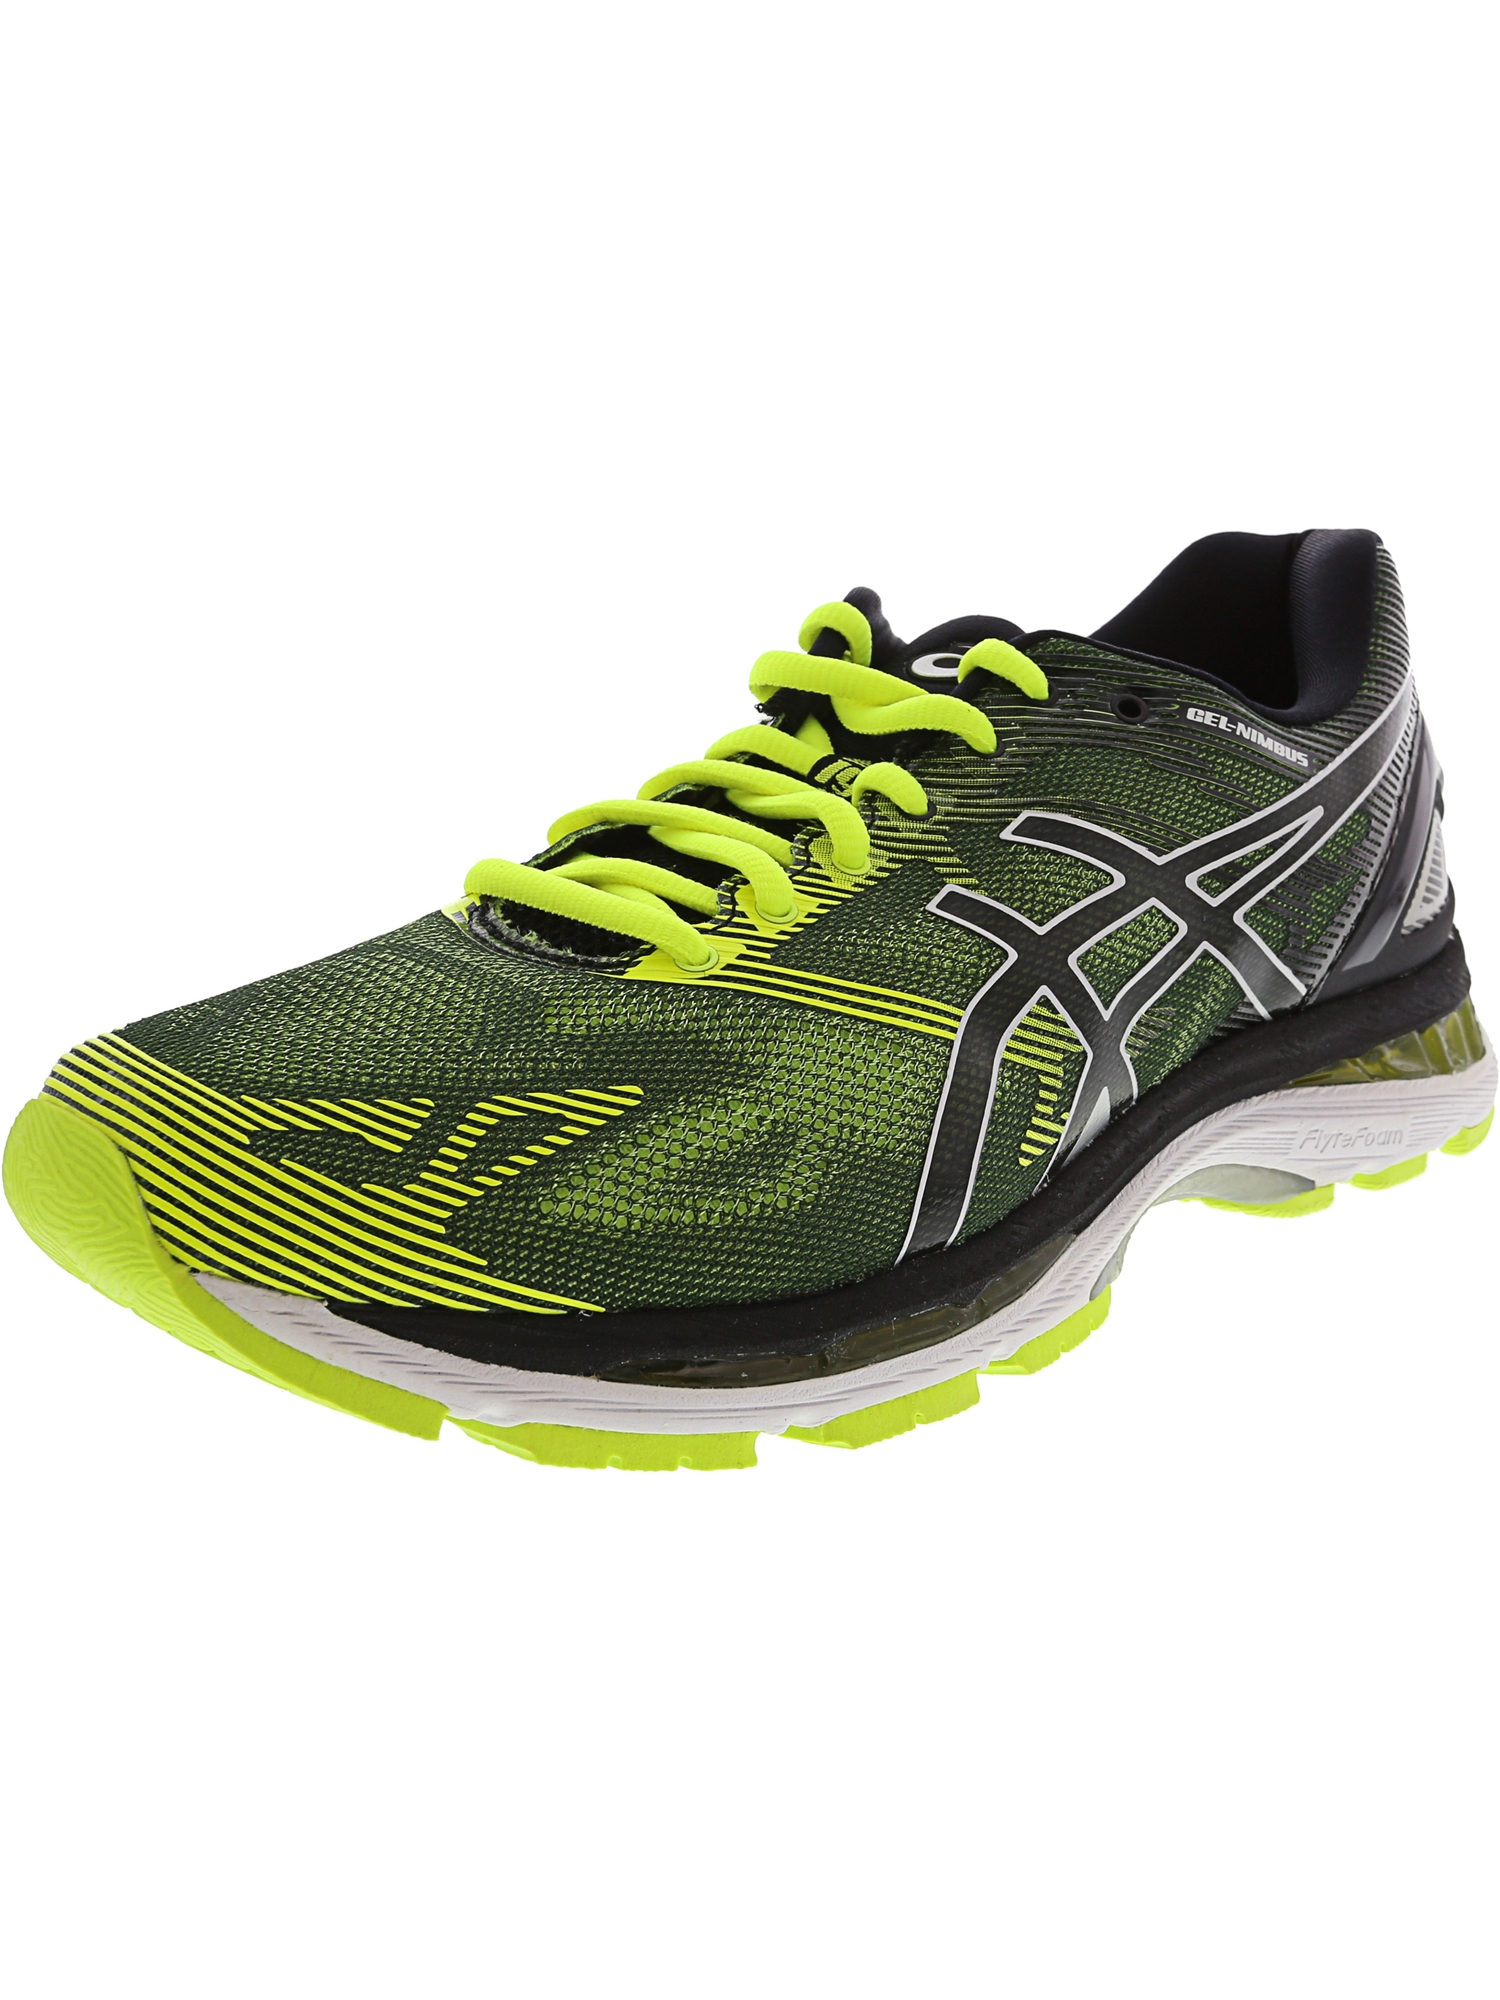 Asics Men's Gel-Nimbus 19 Carbon / White Silver Ankle-High Running Shoe - 9.5W